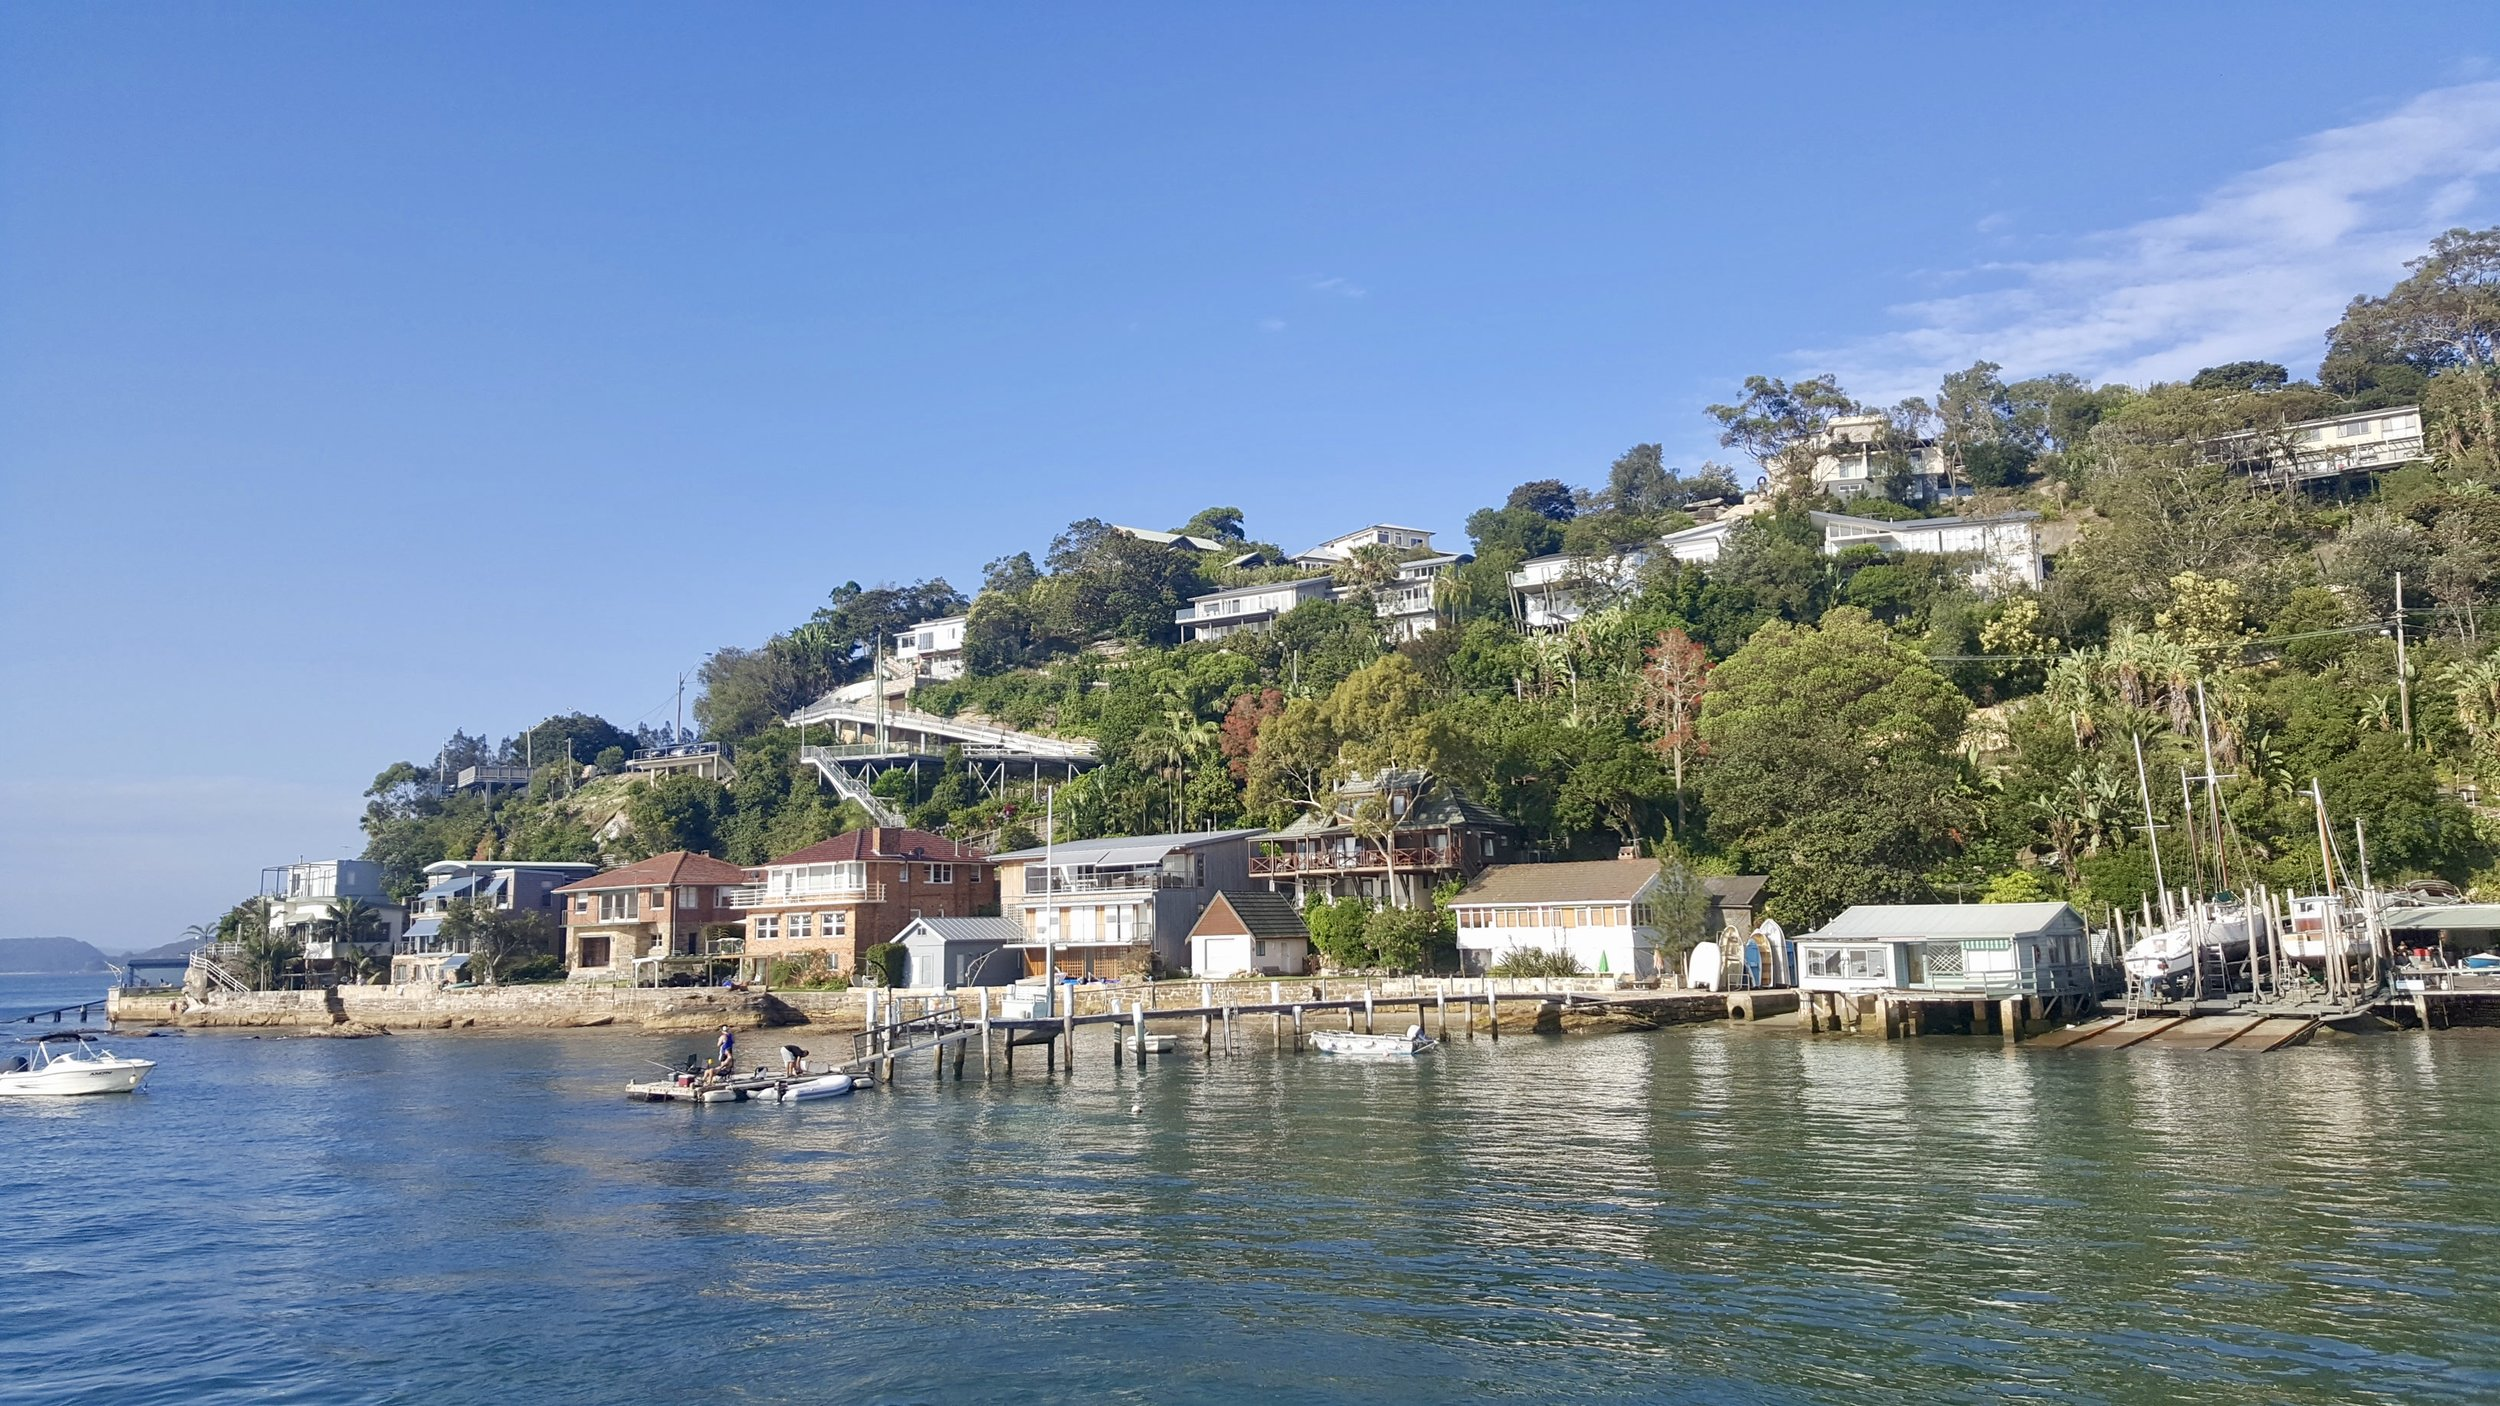 Houses on the water at Palm Beach, Sydney, New South Wales